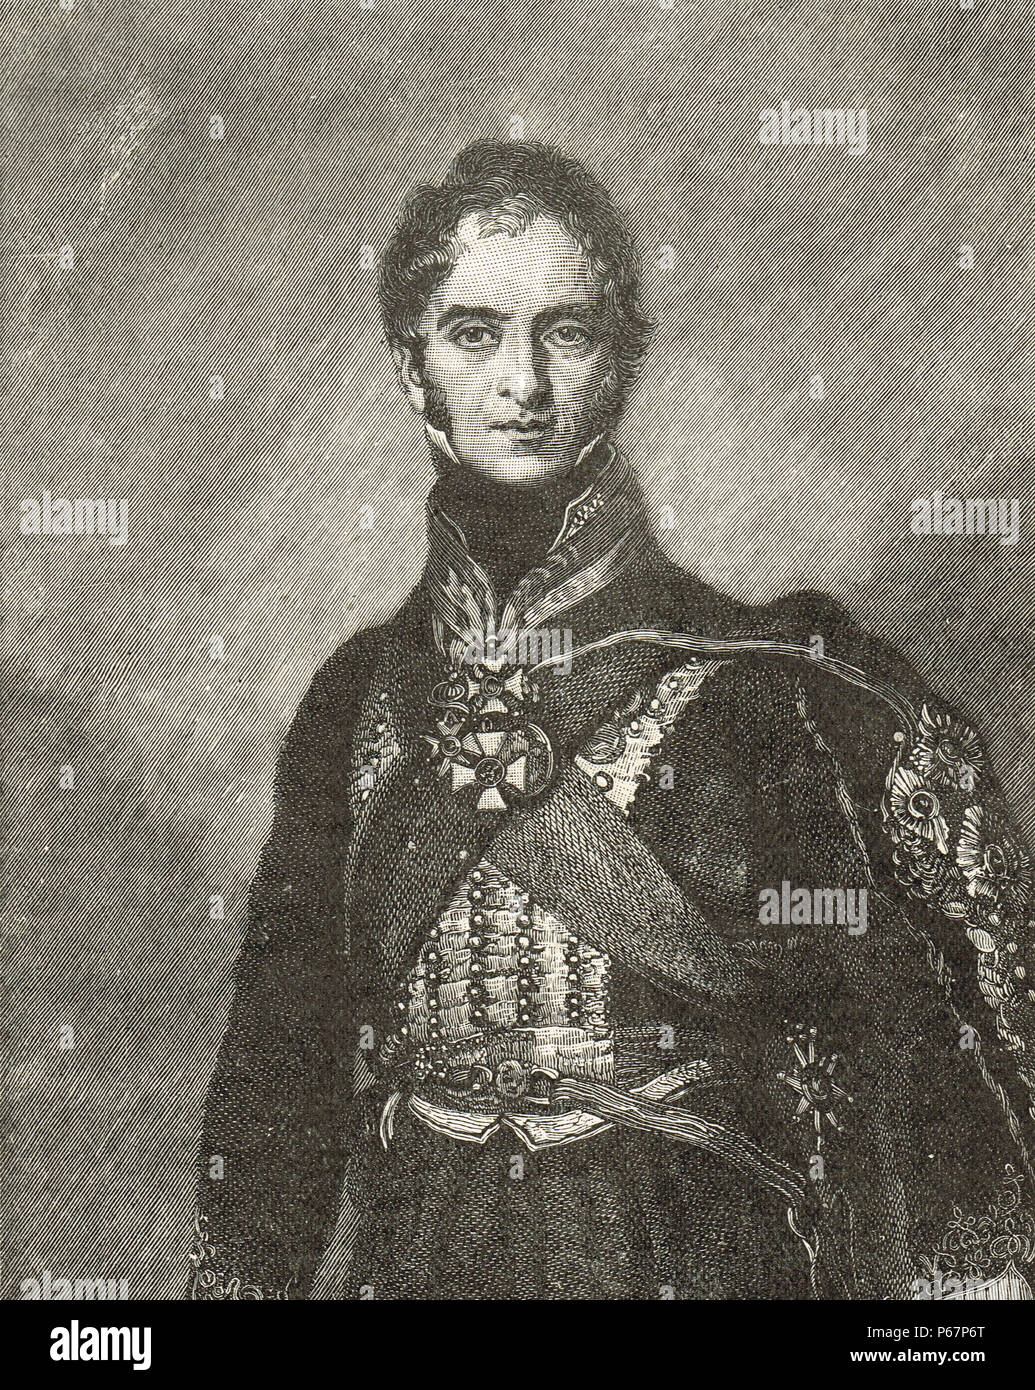 Field Marshal Henry William Paget, 1st Marquess of Anglesey - Stock Image